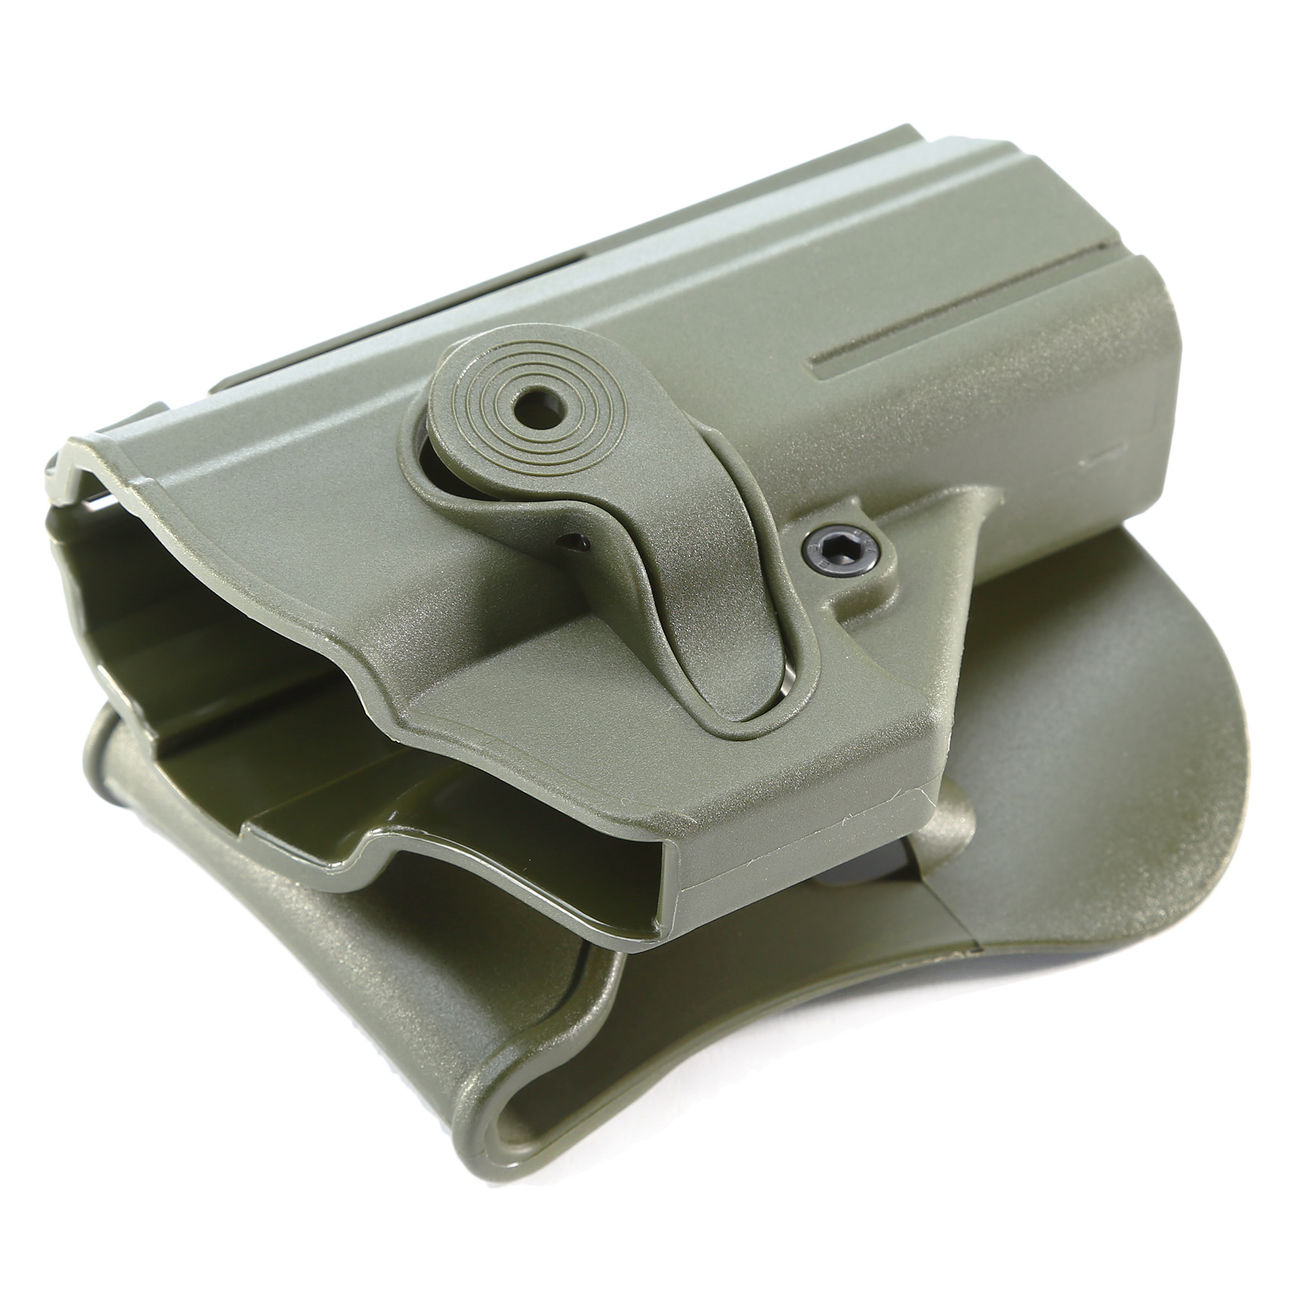 IMI Defense Level 2 Holster Kunststoff Paddle für CZ P-07 OD 2